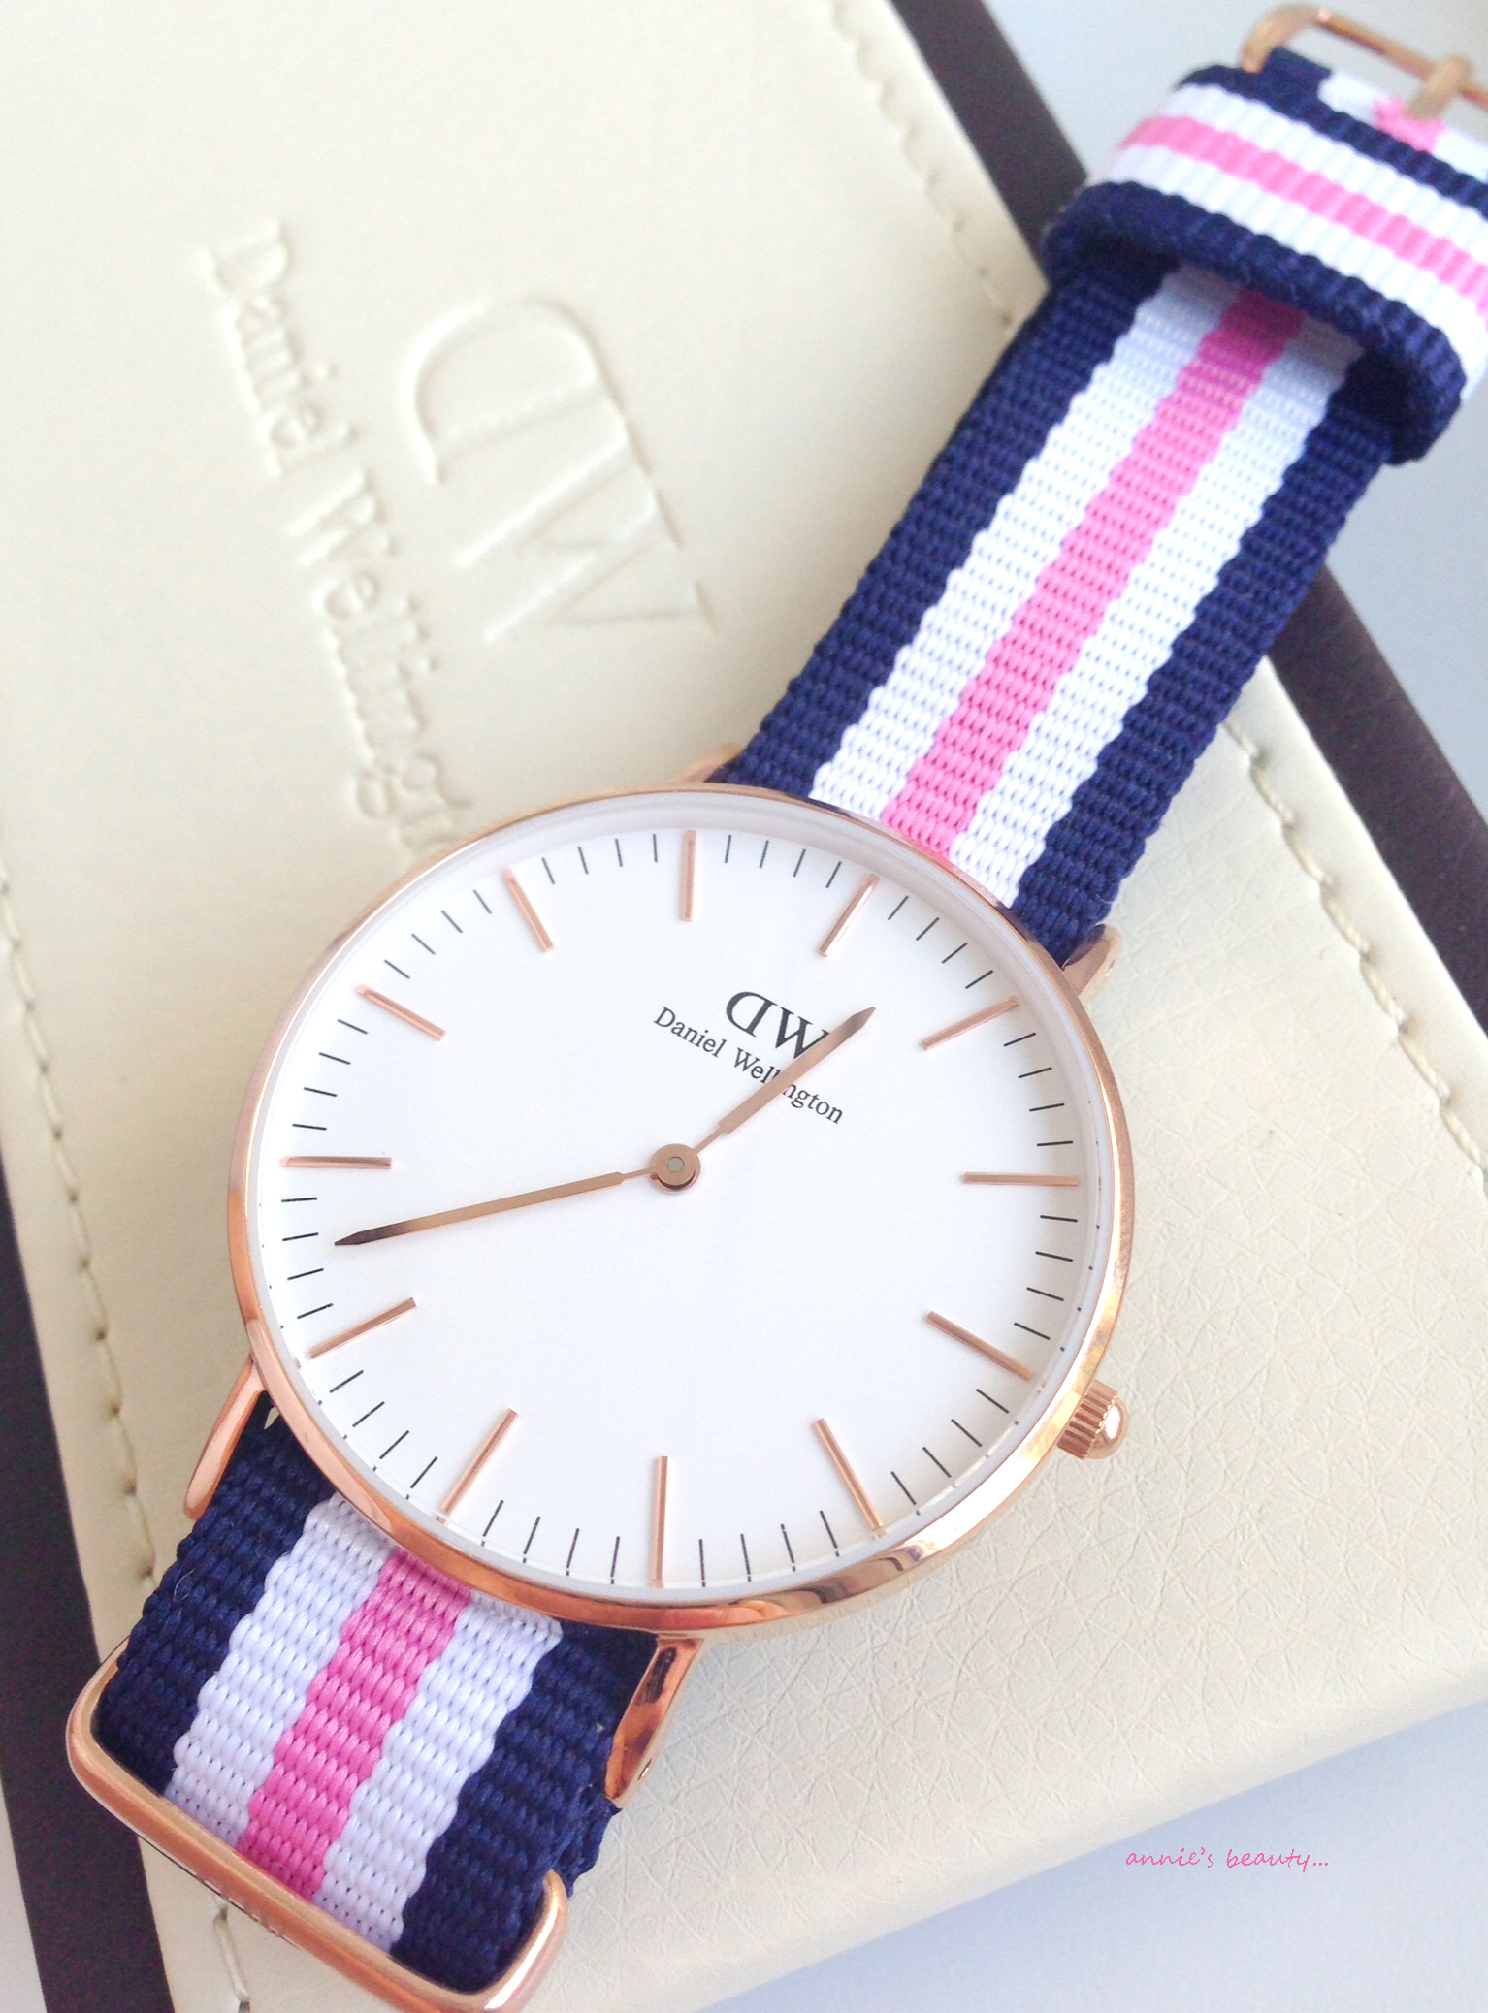 Amato Daniel Wellington | annie's beauty UH51